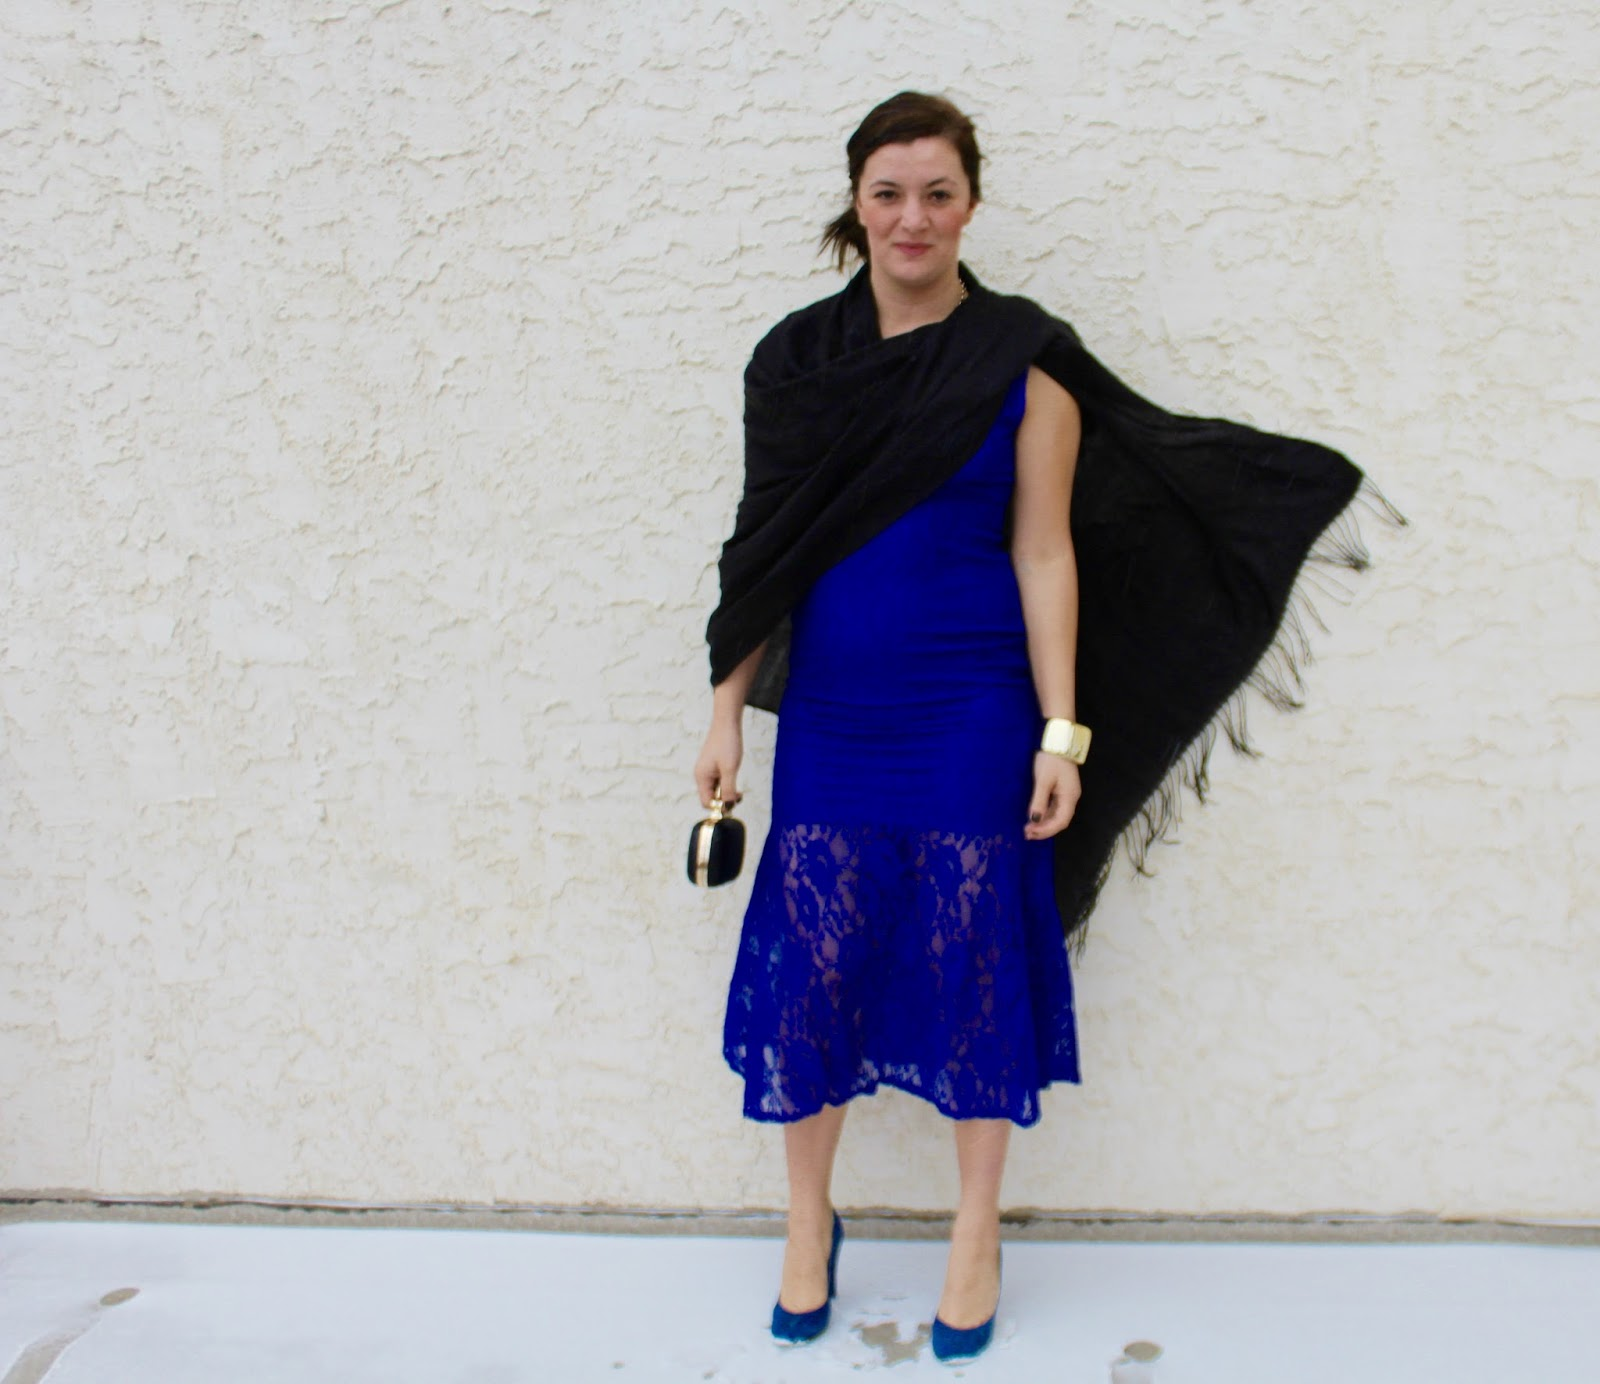 2019 year style- Blue royal dress what shoes to wear